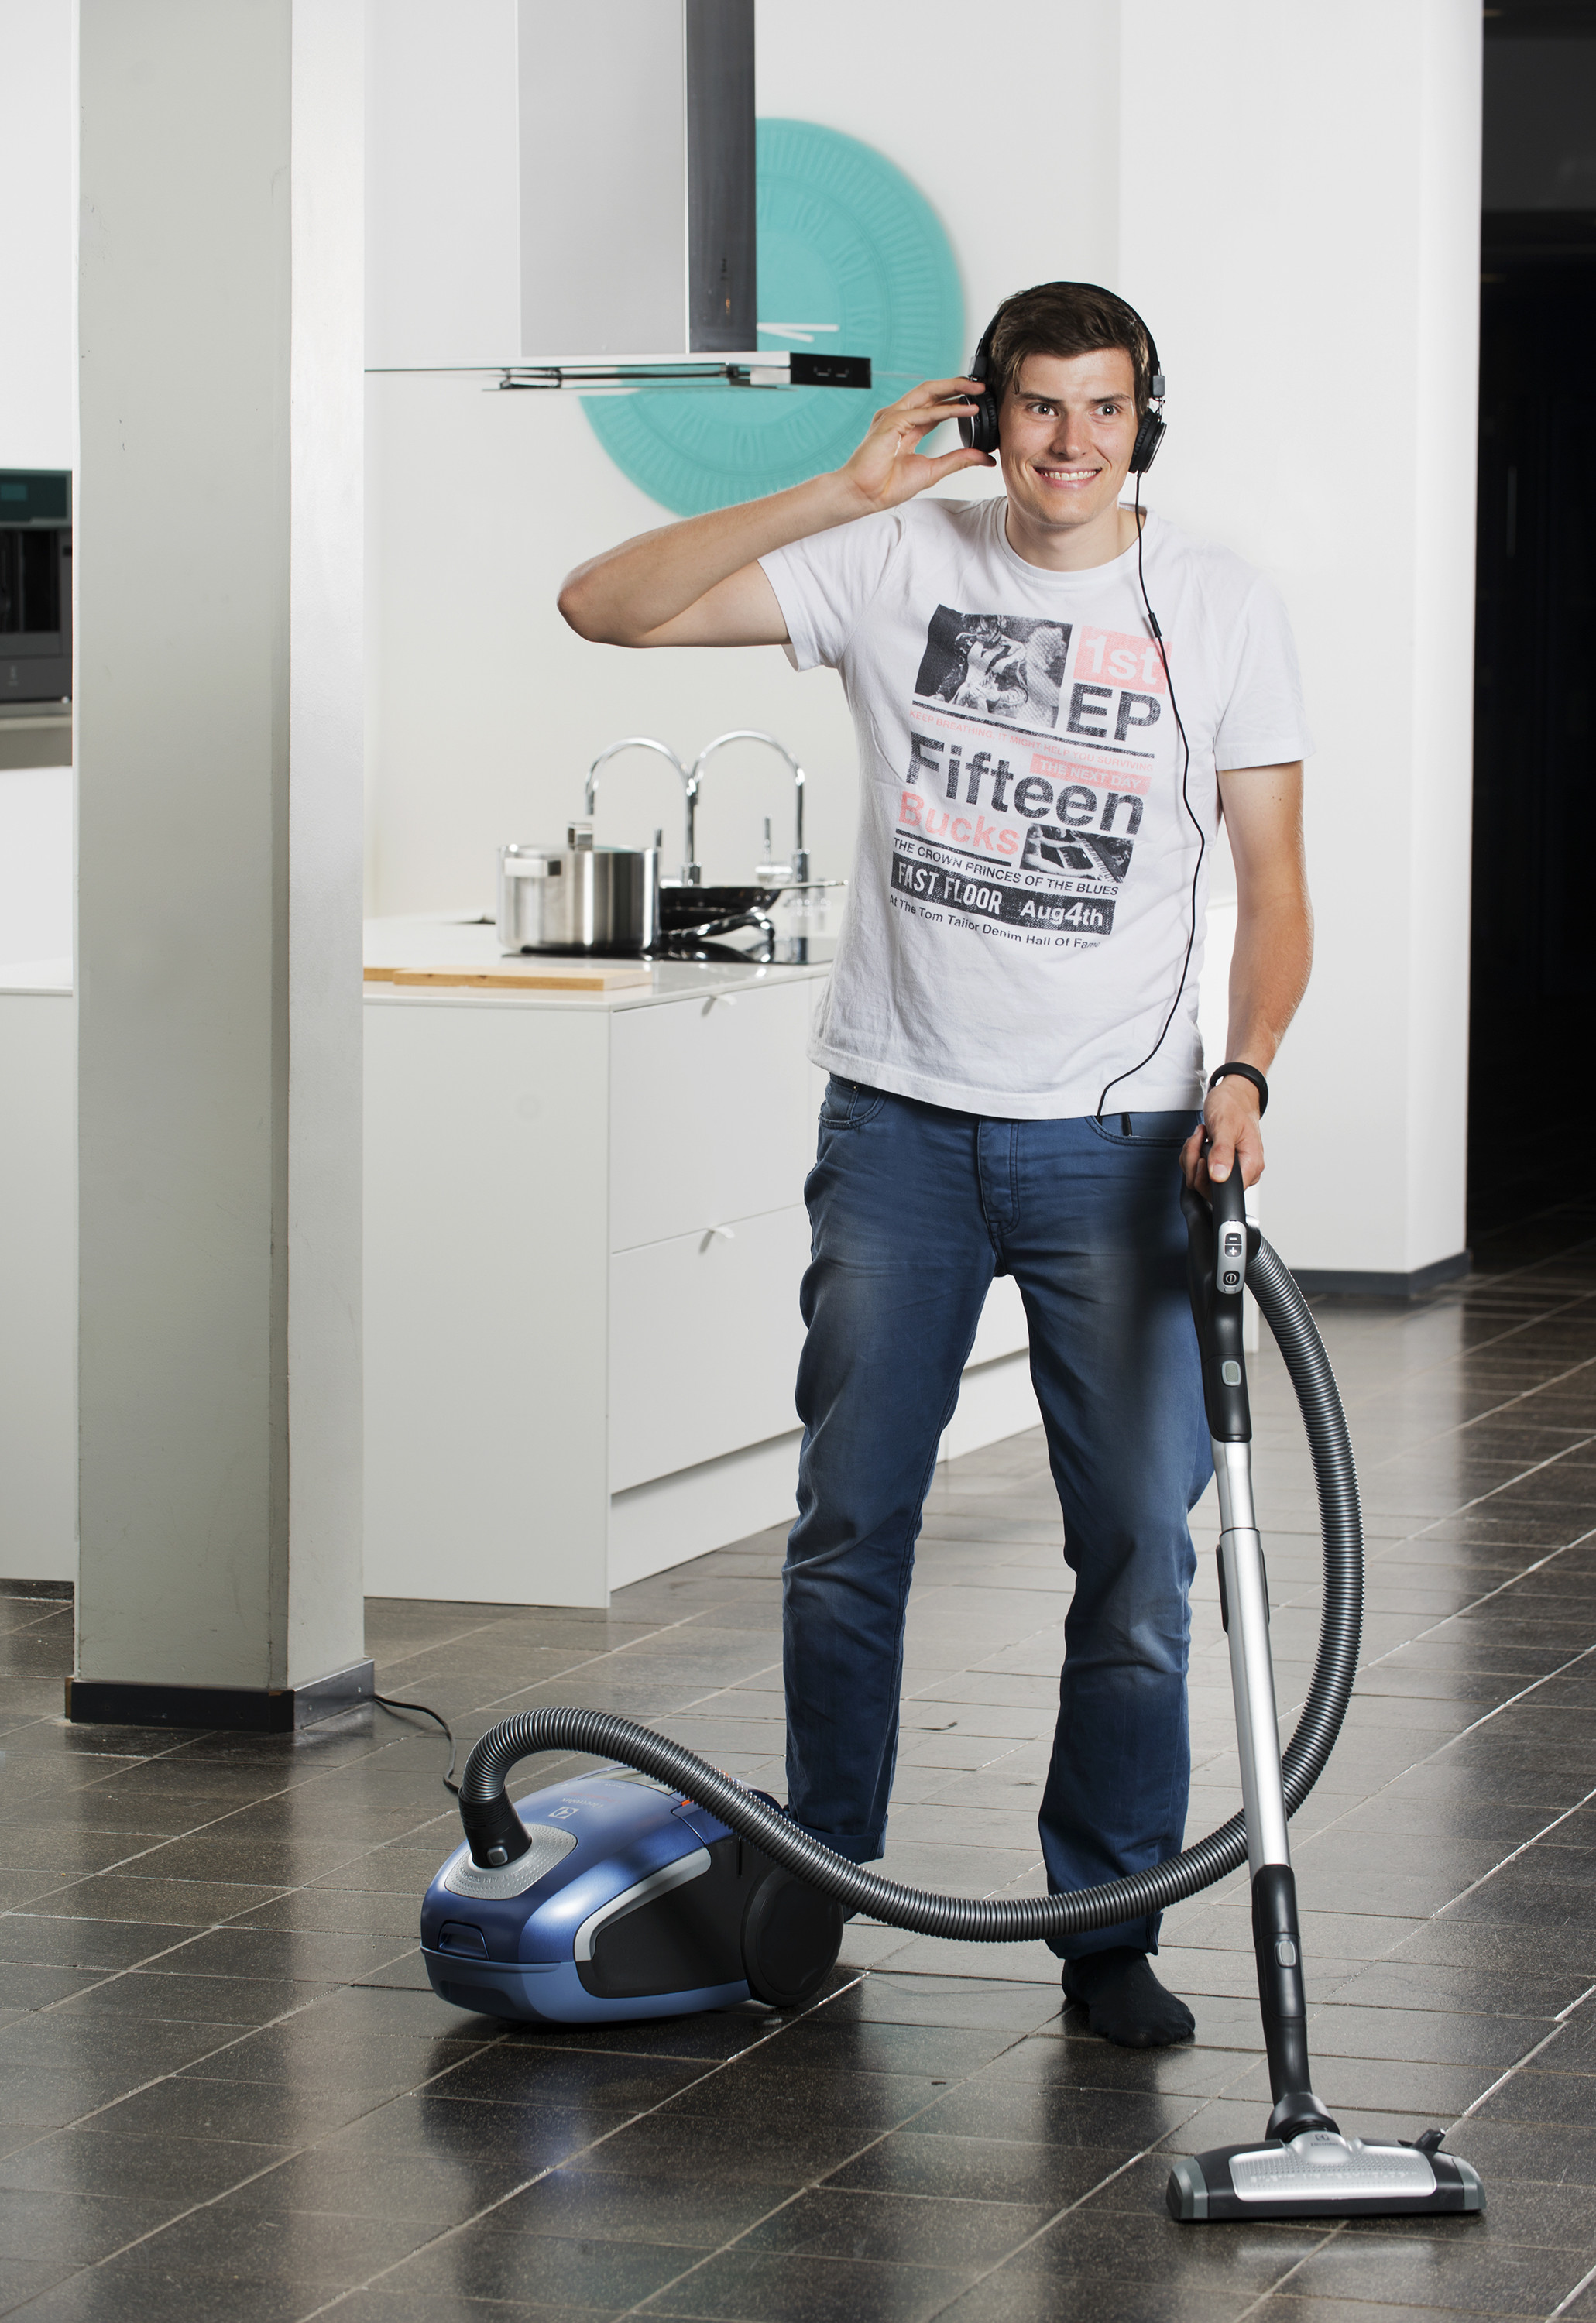 Best Vacuum for Hardwood Floors 2015 Of Global Cleaning Habits Exposed In Electrolux Vacuuming Survey for Electrolux Global Vacuuming Survey 2013 Music